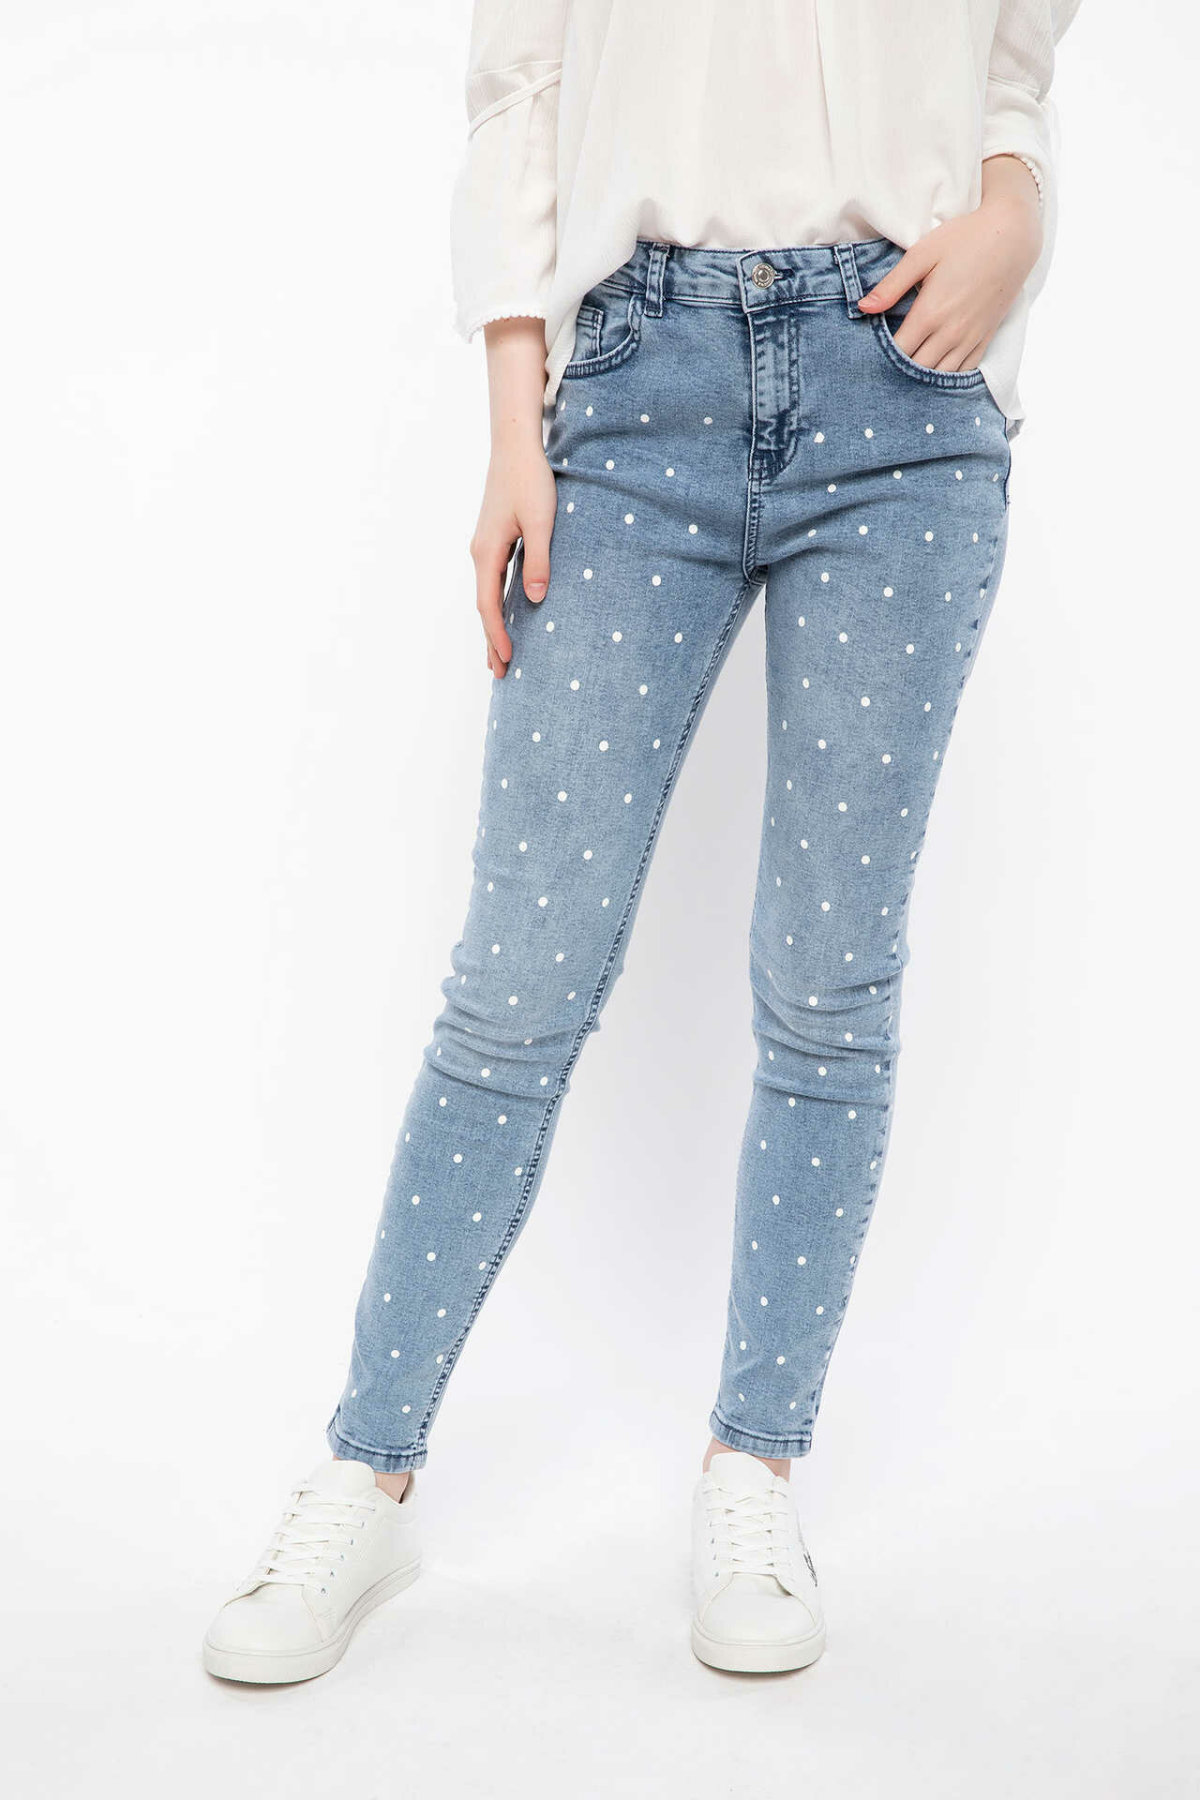 DeFacto Fashion Women Mid Waist Dot Blue Jean Trousers Casual Elastic Denim Female Pencil Crop Pants Lady New -J5944AZ18HS